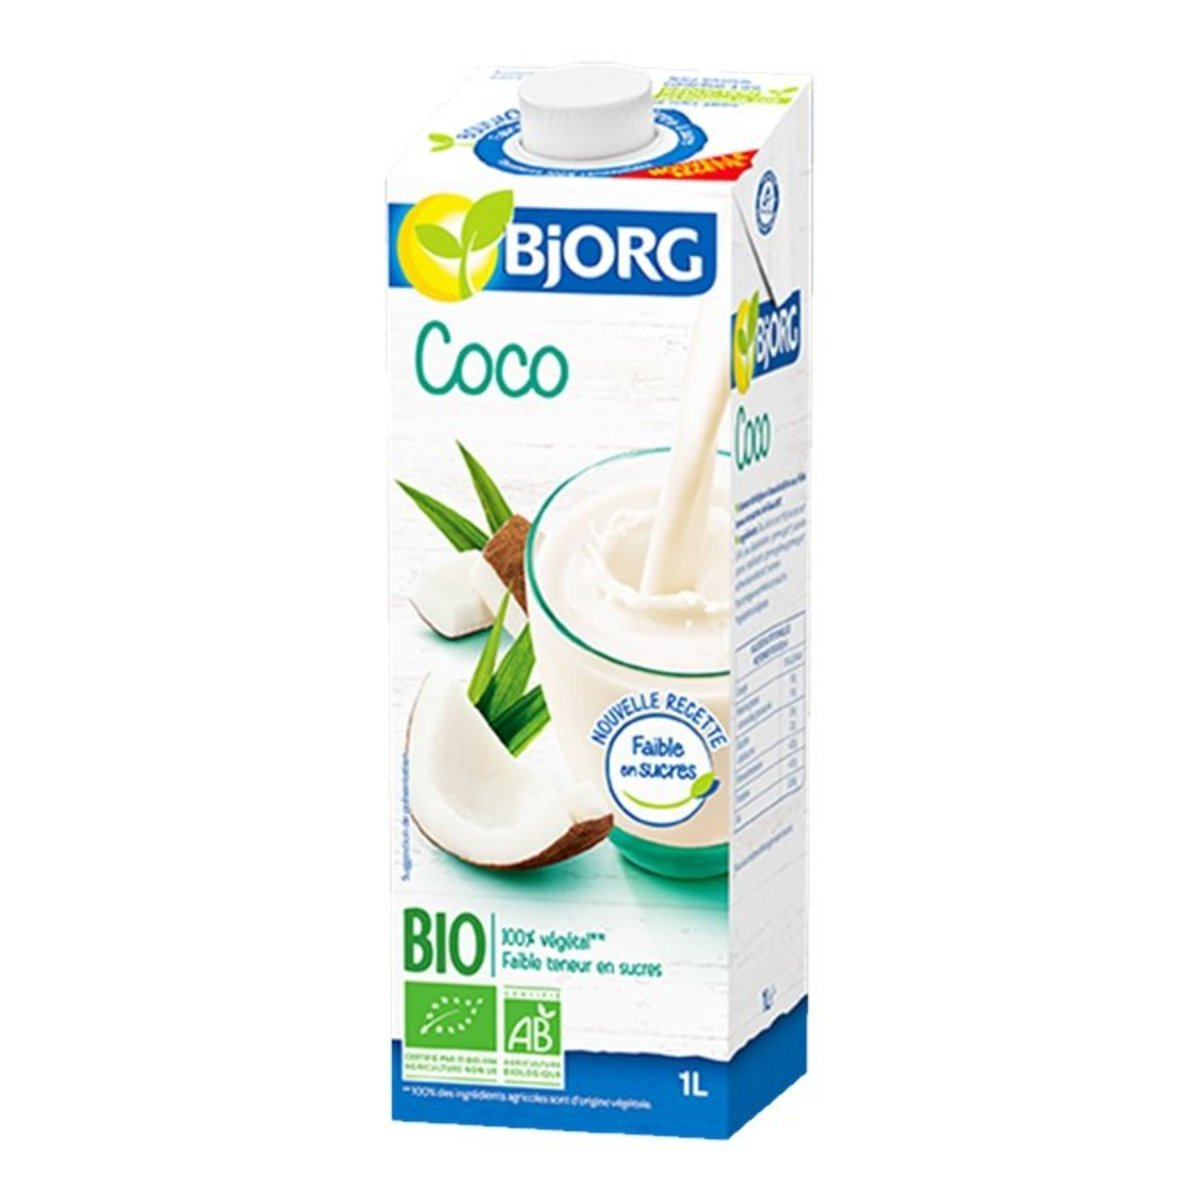 Organic Coconut milk drink(1L)-(1pc)-Italy BJ3014955 (Special offer)